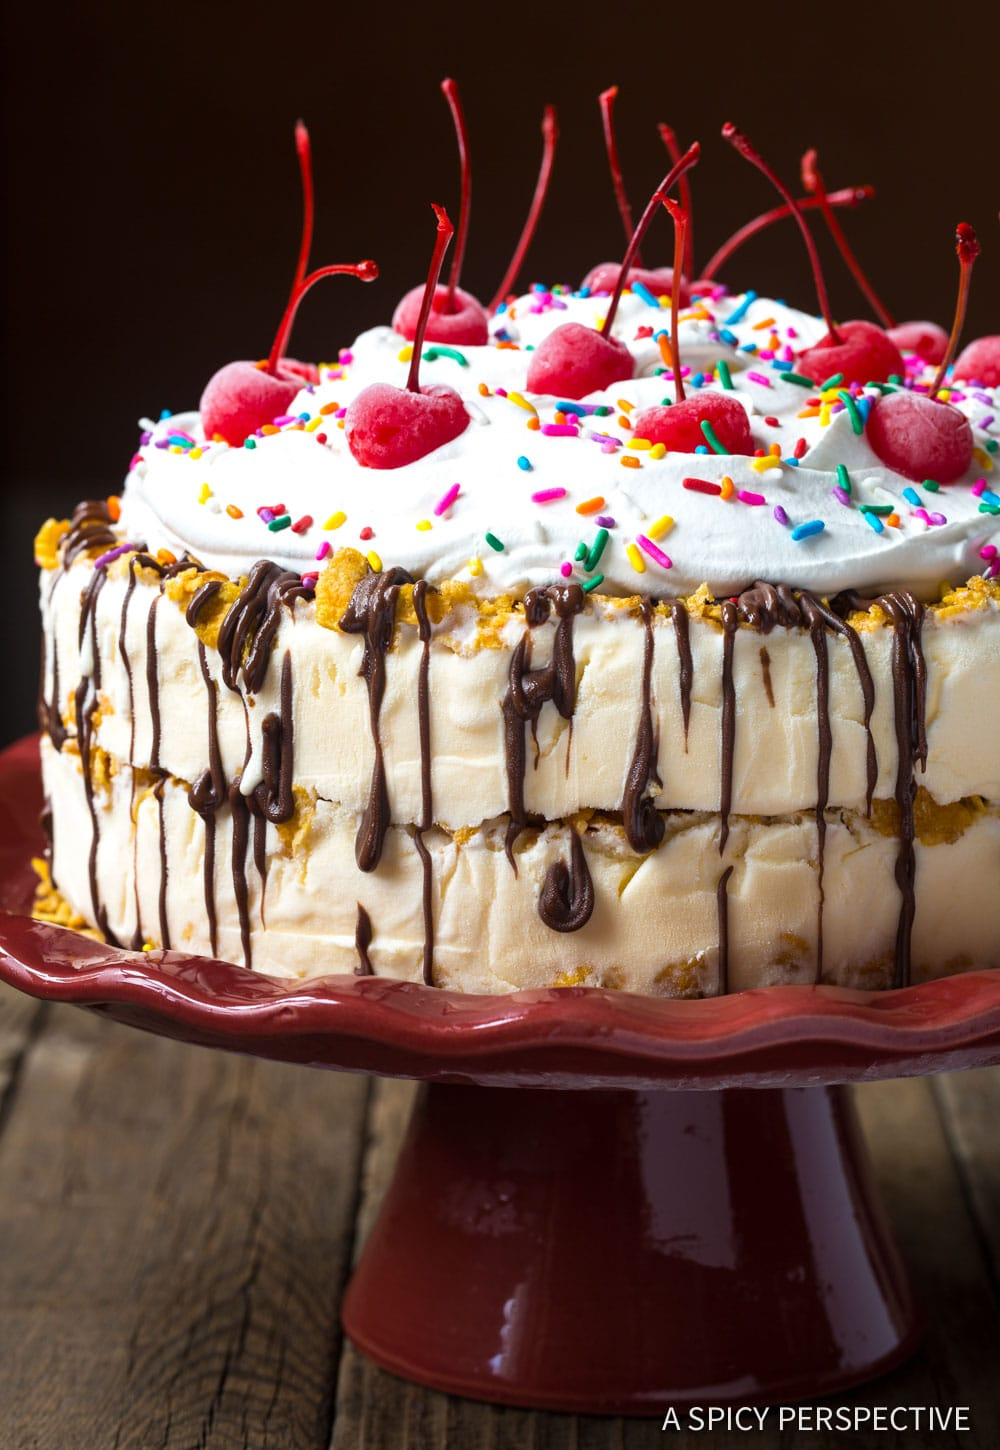 Mexican Fried Ice Cream Cake Recipe #ASpicyPerspective